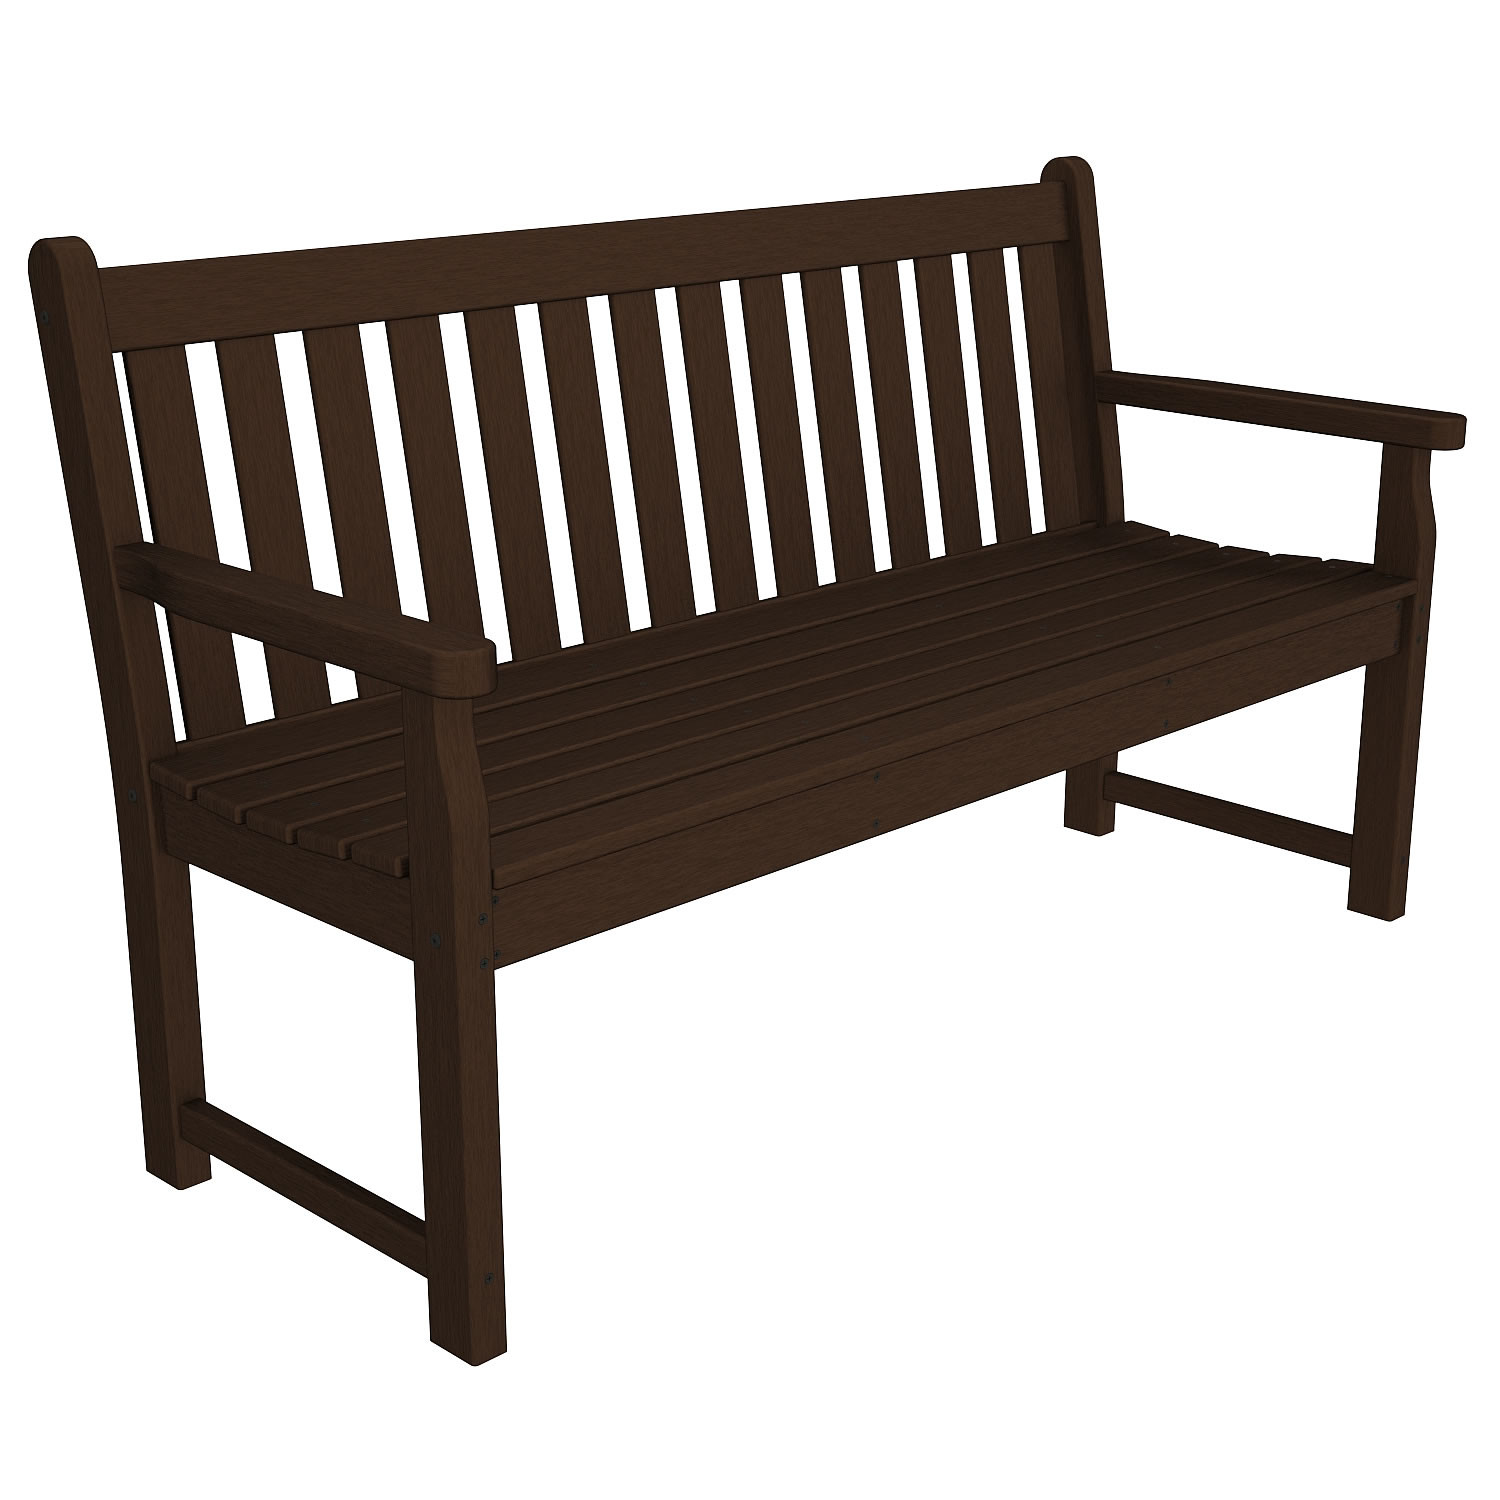 Polywood Traditional Garden 60 In Bench Traditional Garden Polywood Outdoor Furniture